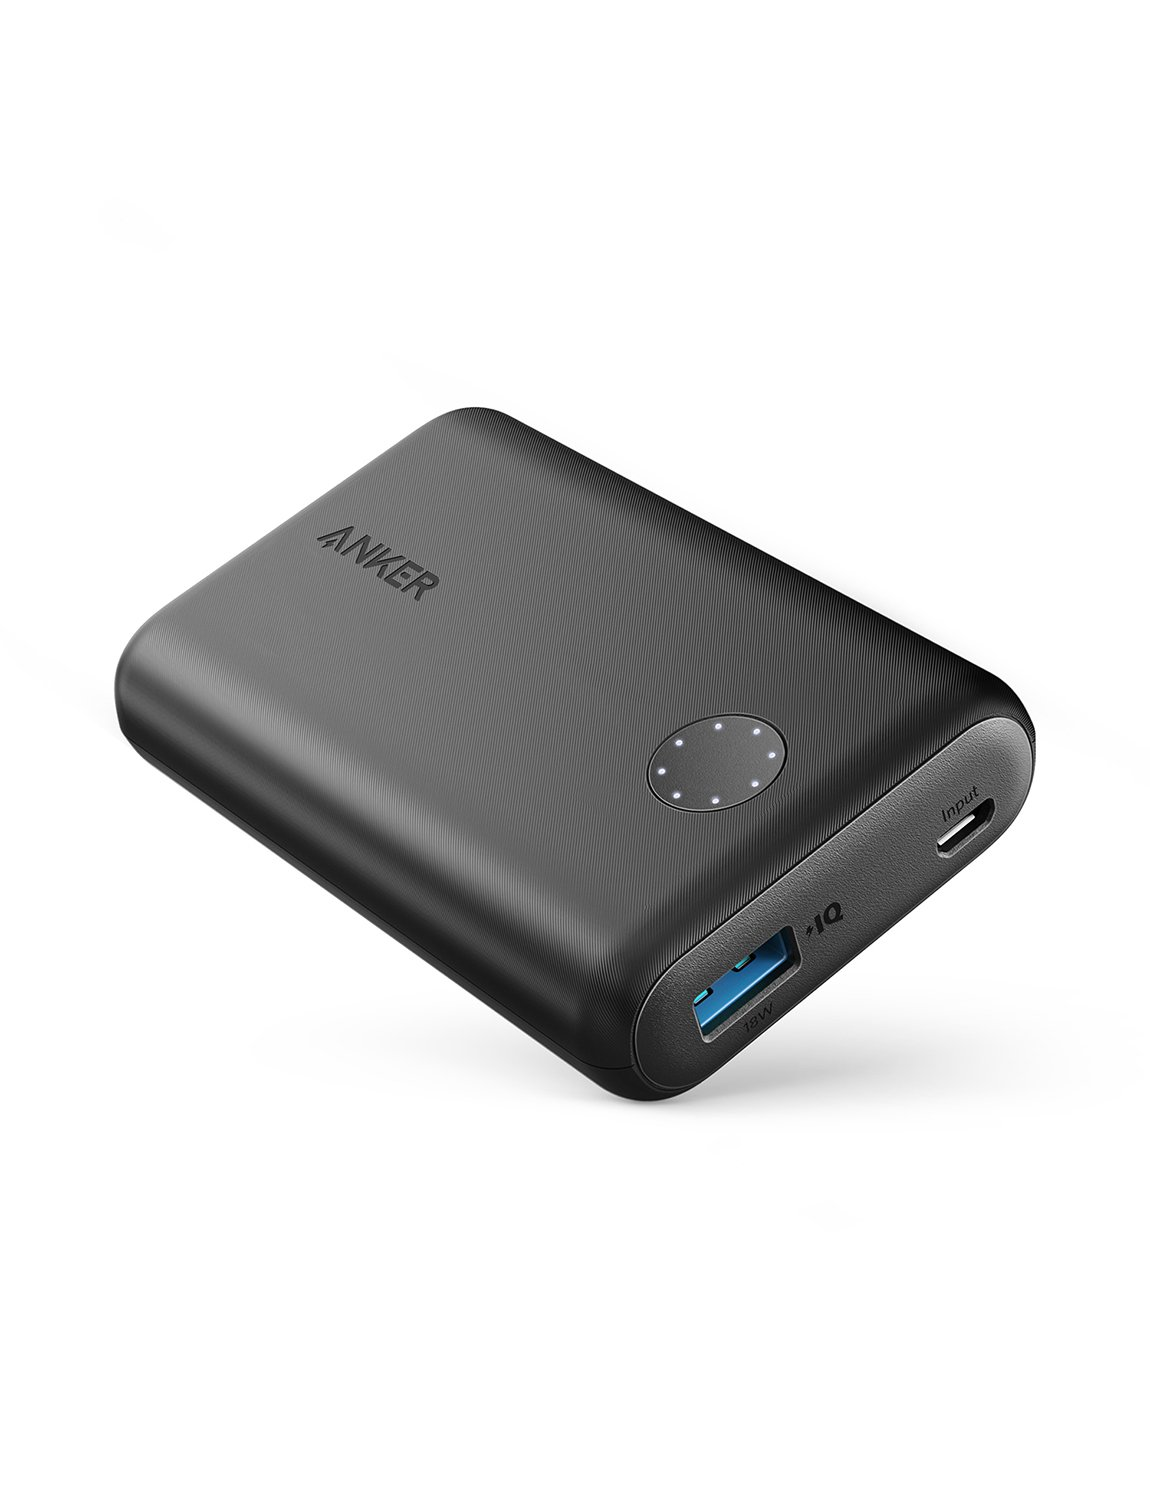 Anker PowerCore II 10000, Ultra-Compact 10000mAh Portable Charger, Upgraded PowerIQ 2.0 (up to 18W Output), Fast Charge for iPhone, Samsung Galaxy and More A1230011